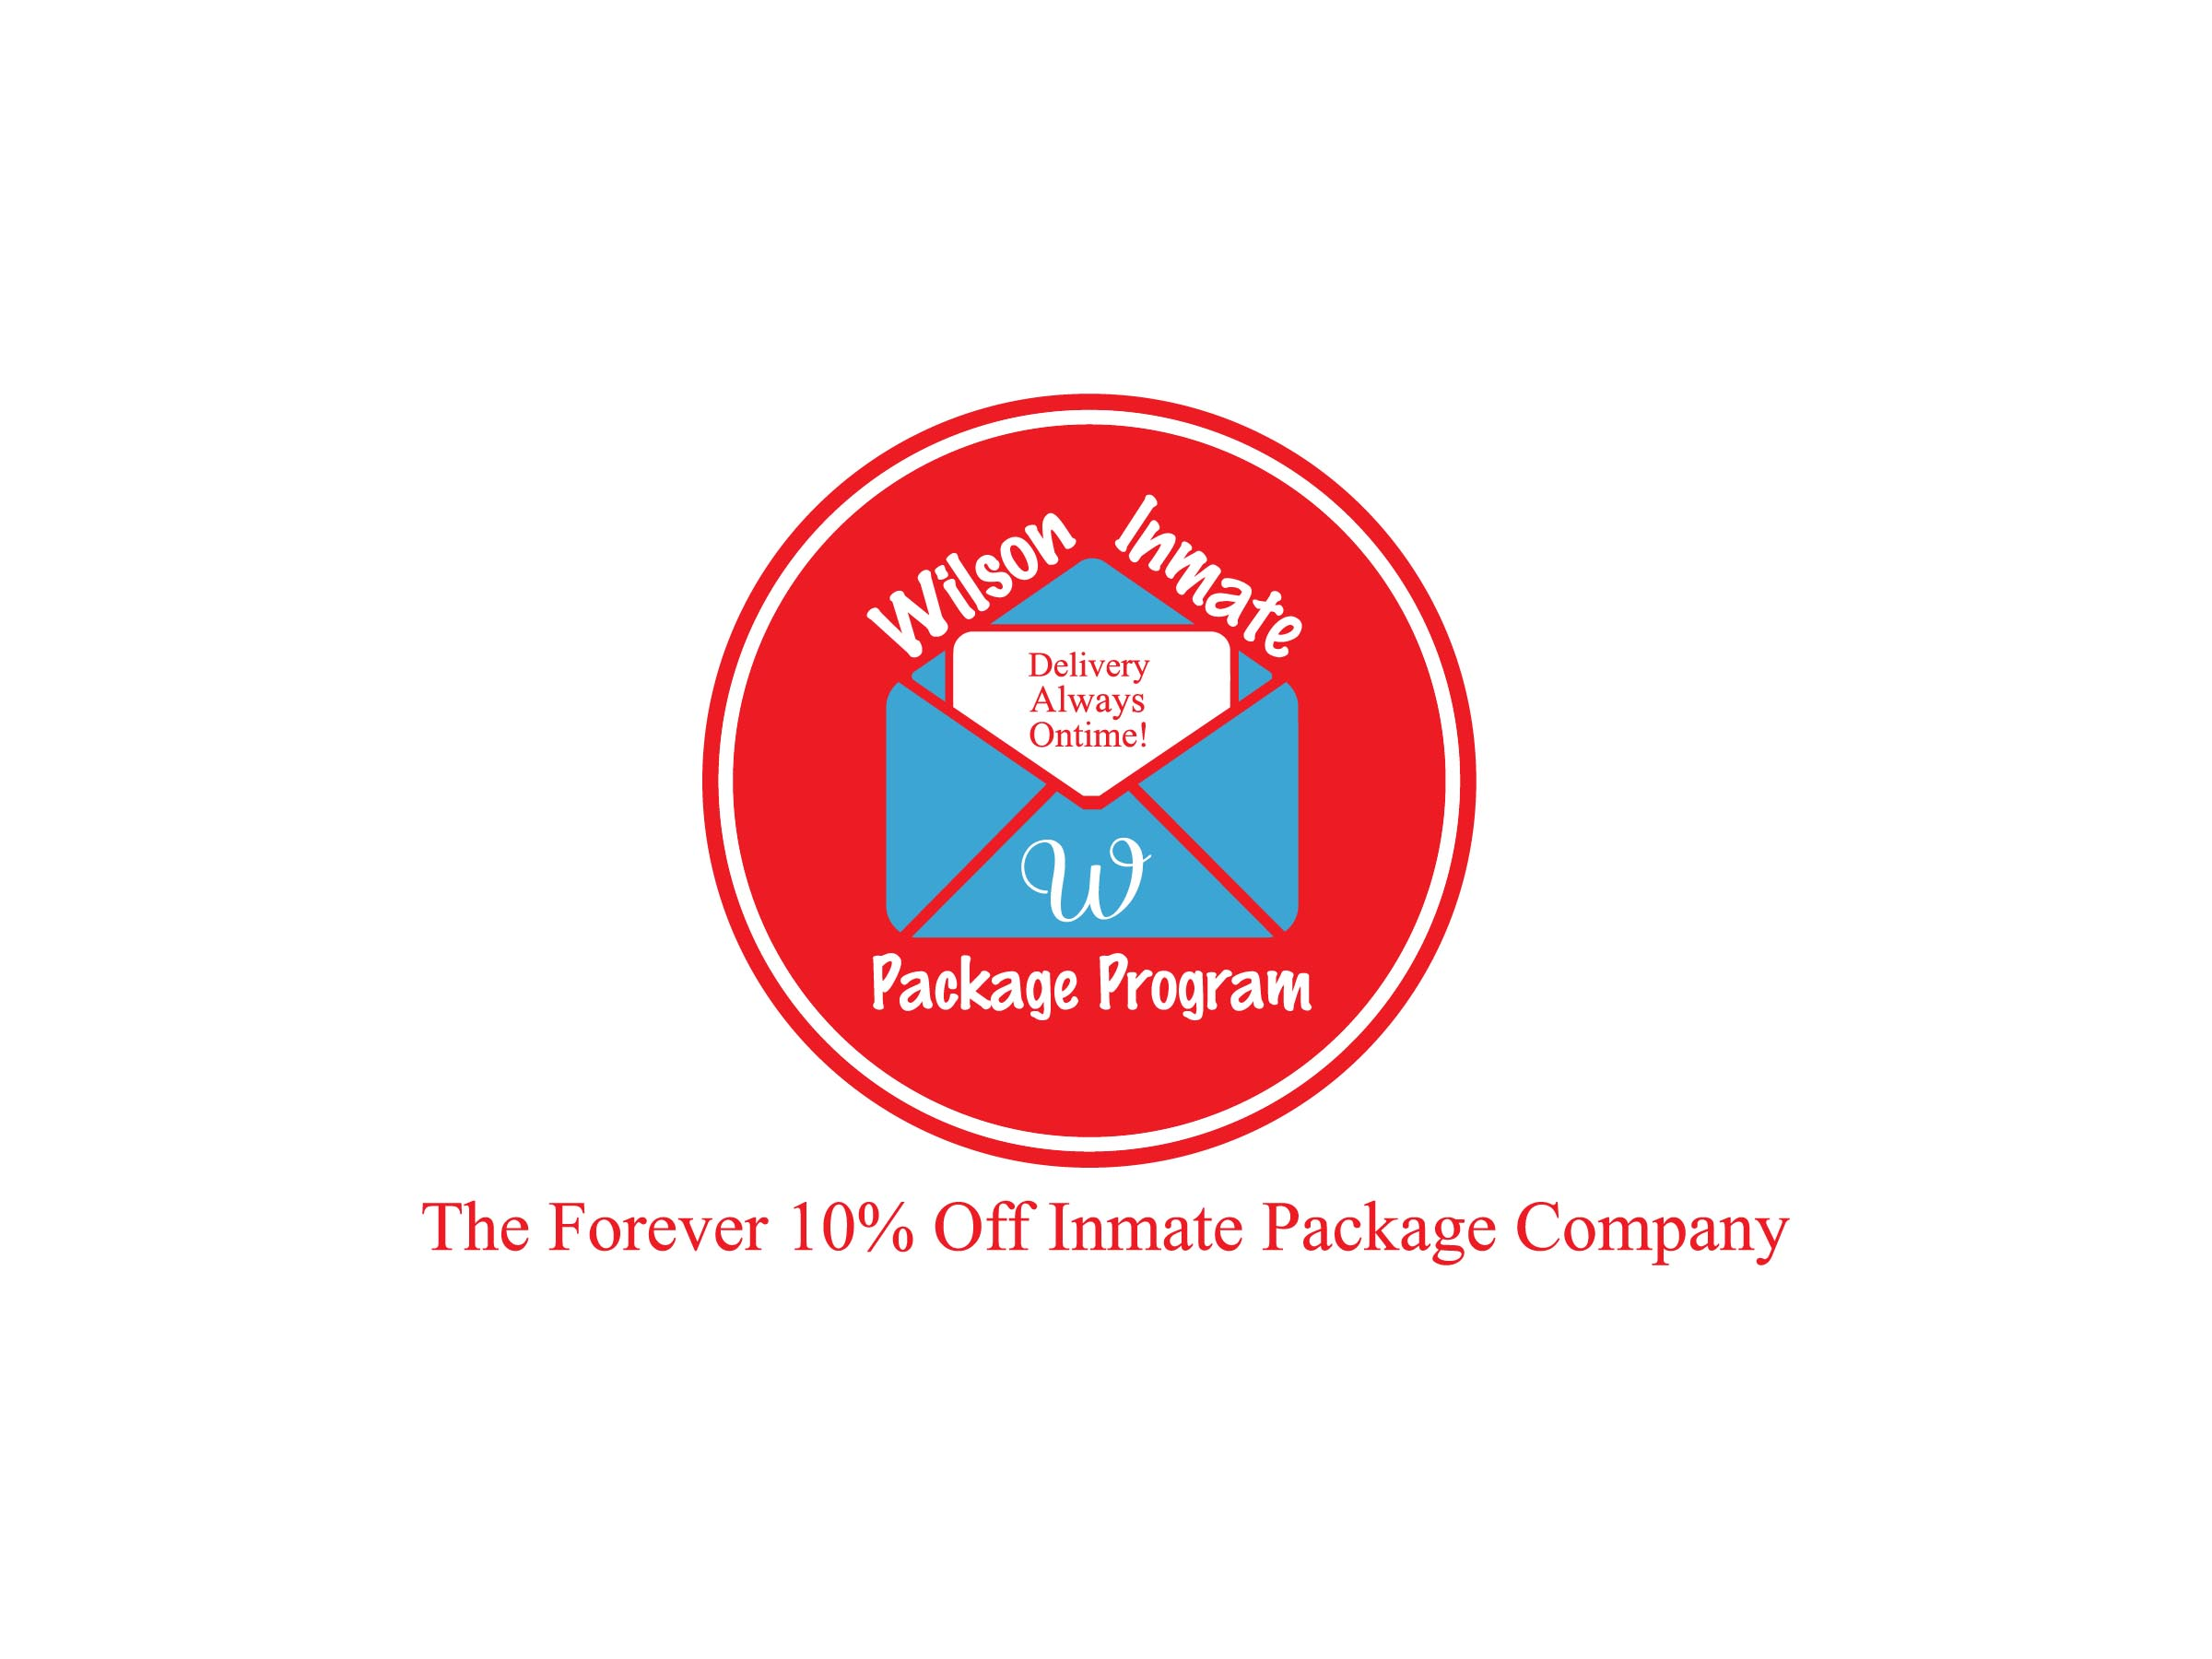 Wilson Inmate Package Program Inc